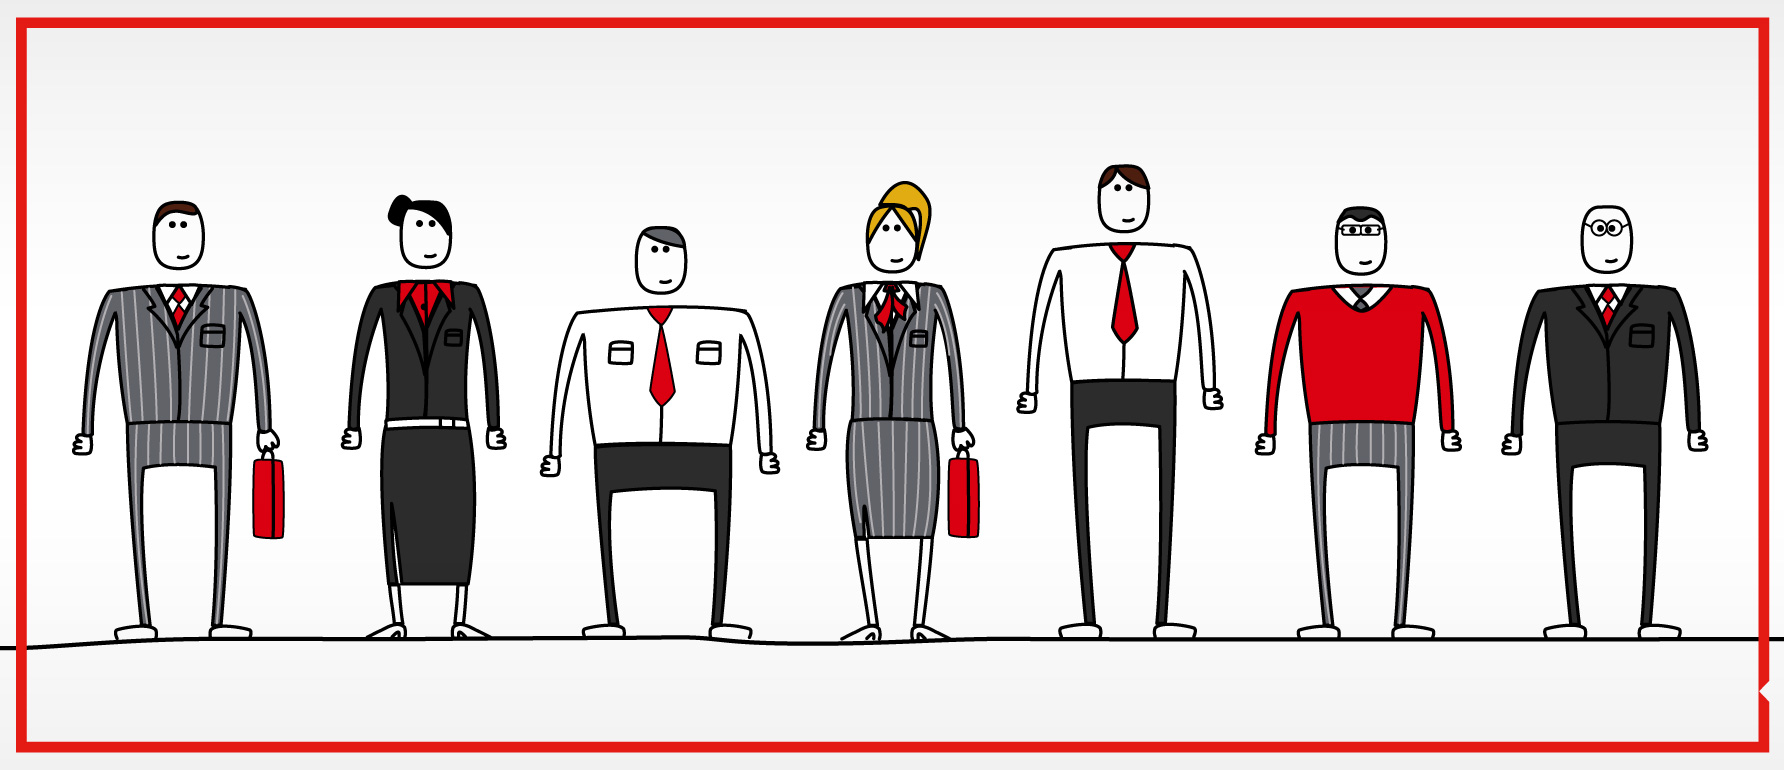 Sales team character's designed for HSBC e-learning course